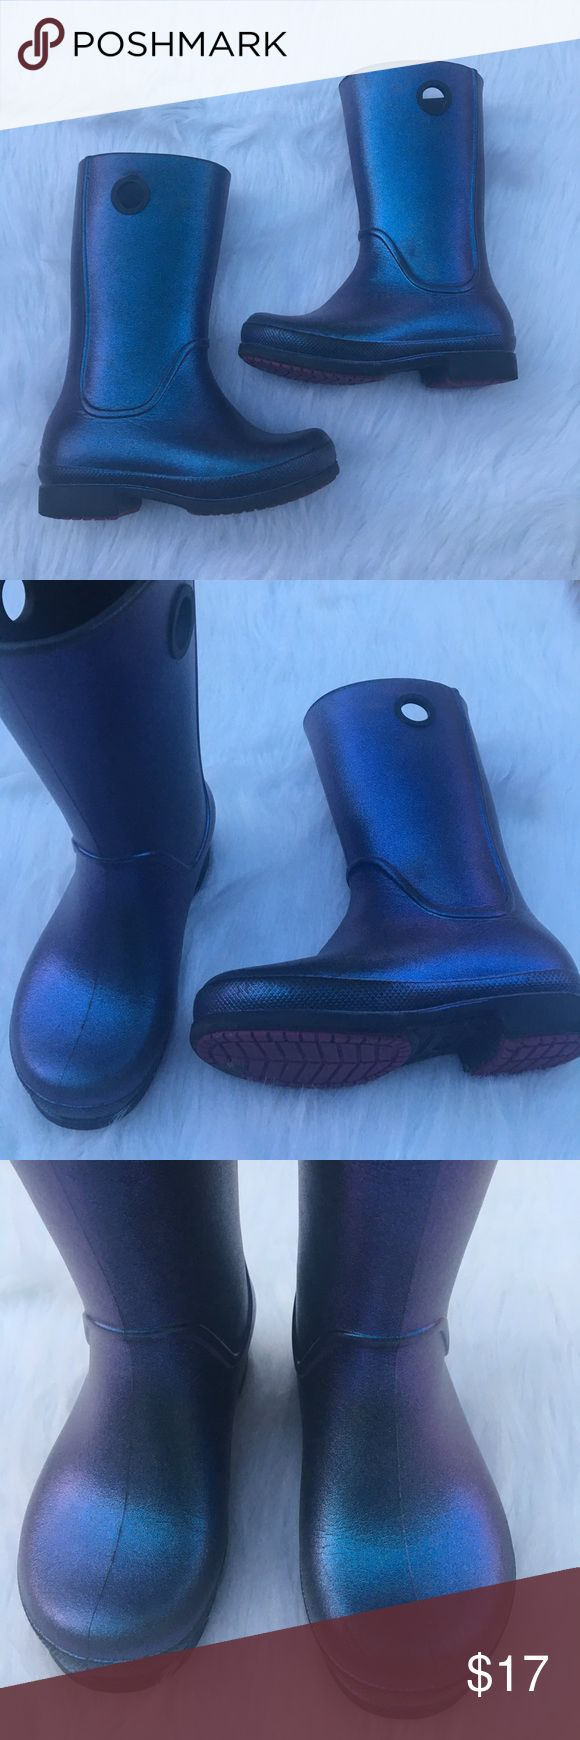 "Crocs Welli Iri Girls Rain Boots sz 12 Aegean Blue Crocs Welli Iridescent Girls Rain Boots sz 12 Aegean Blue with black. Worn few times - runs small. Daughter is a size 11 wide and these will not fit on her foot. Recommended for a smaller foot size or narrow foot. Measures approx 9"" tall from top to bottom, soles measures 7 1/2"" x 2 1/2"". Some wear and scuffing as shown. CROCS Shoes Boots"